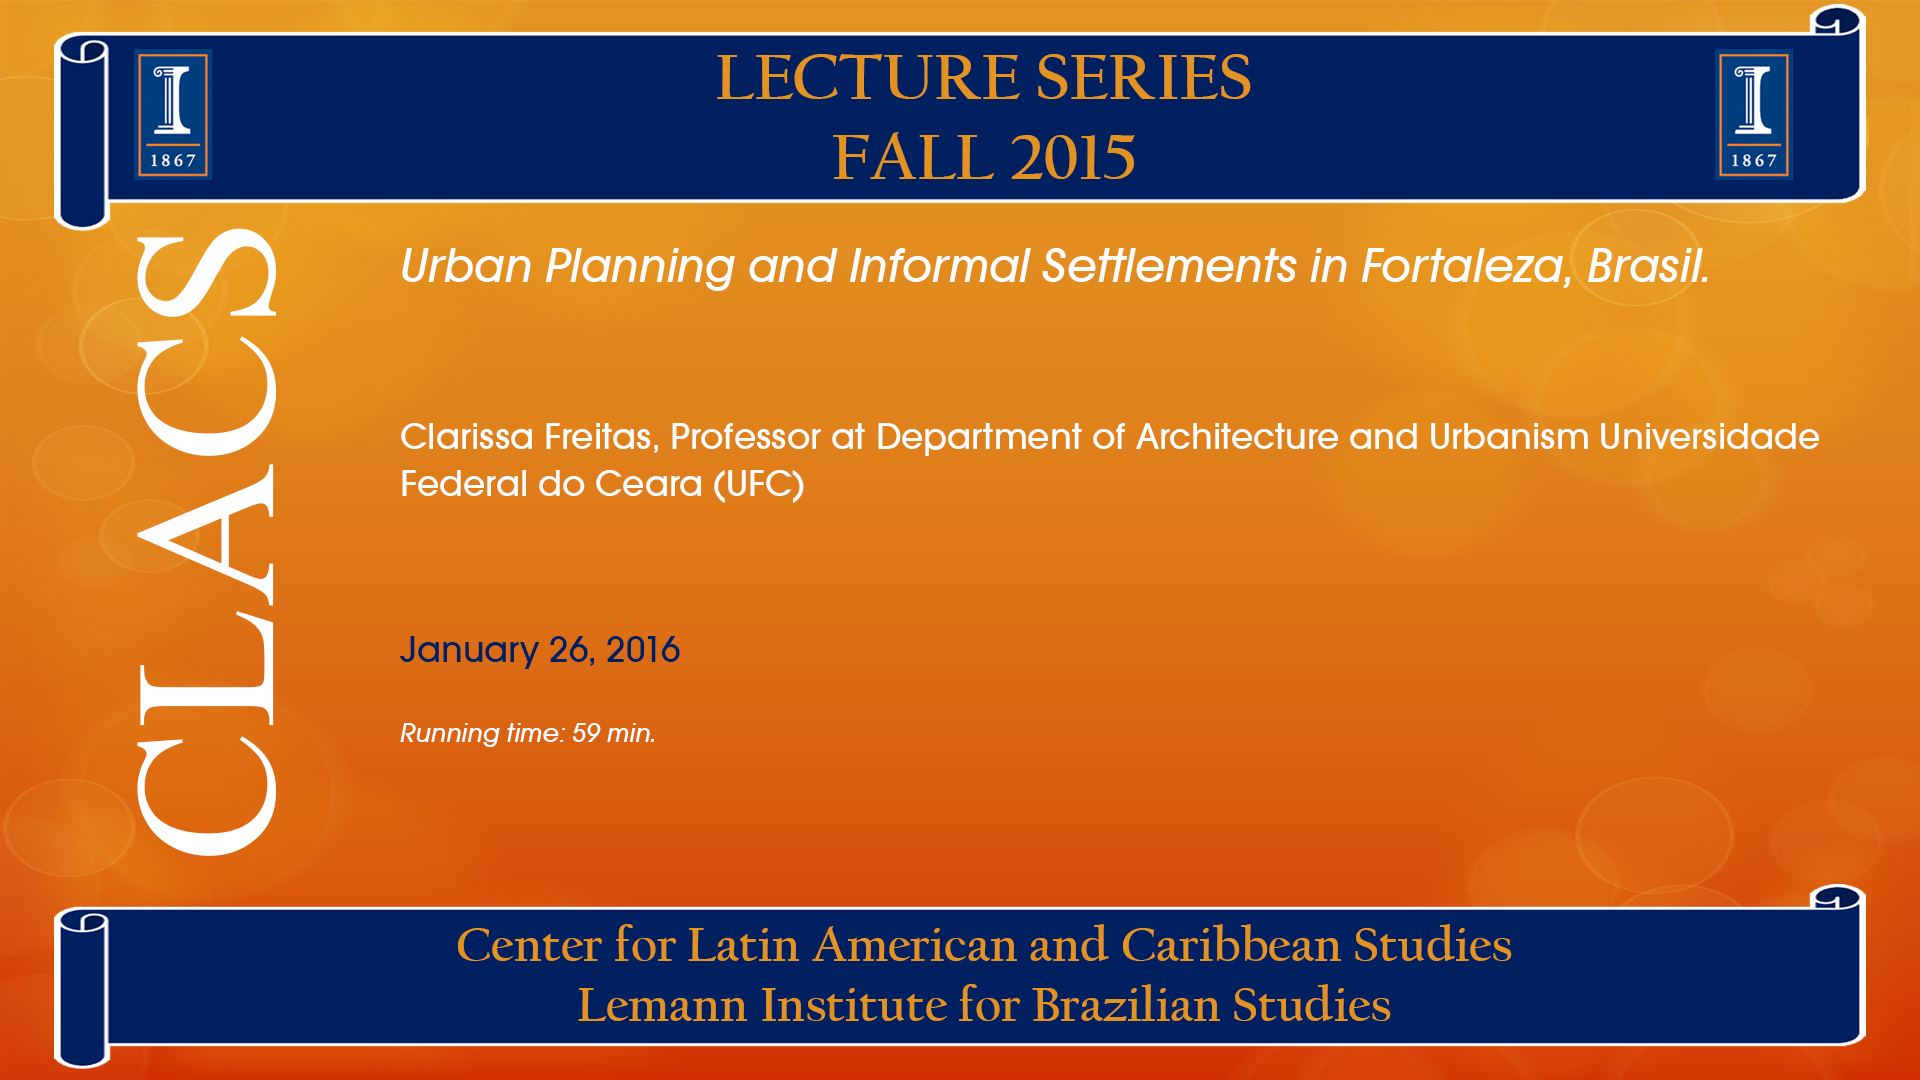 Urban Planning and Informal Settlements in Fortaleza, Brasil